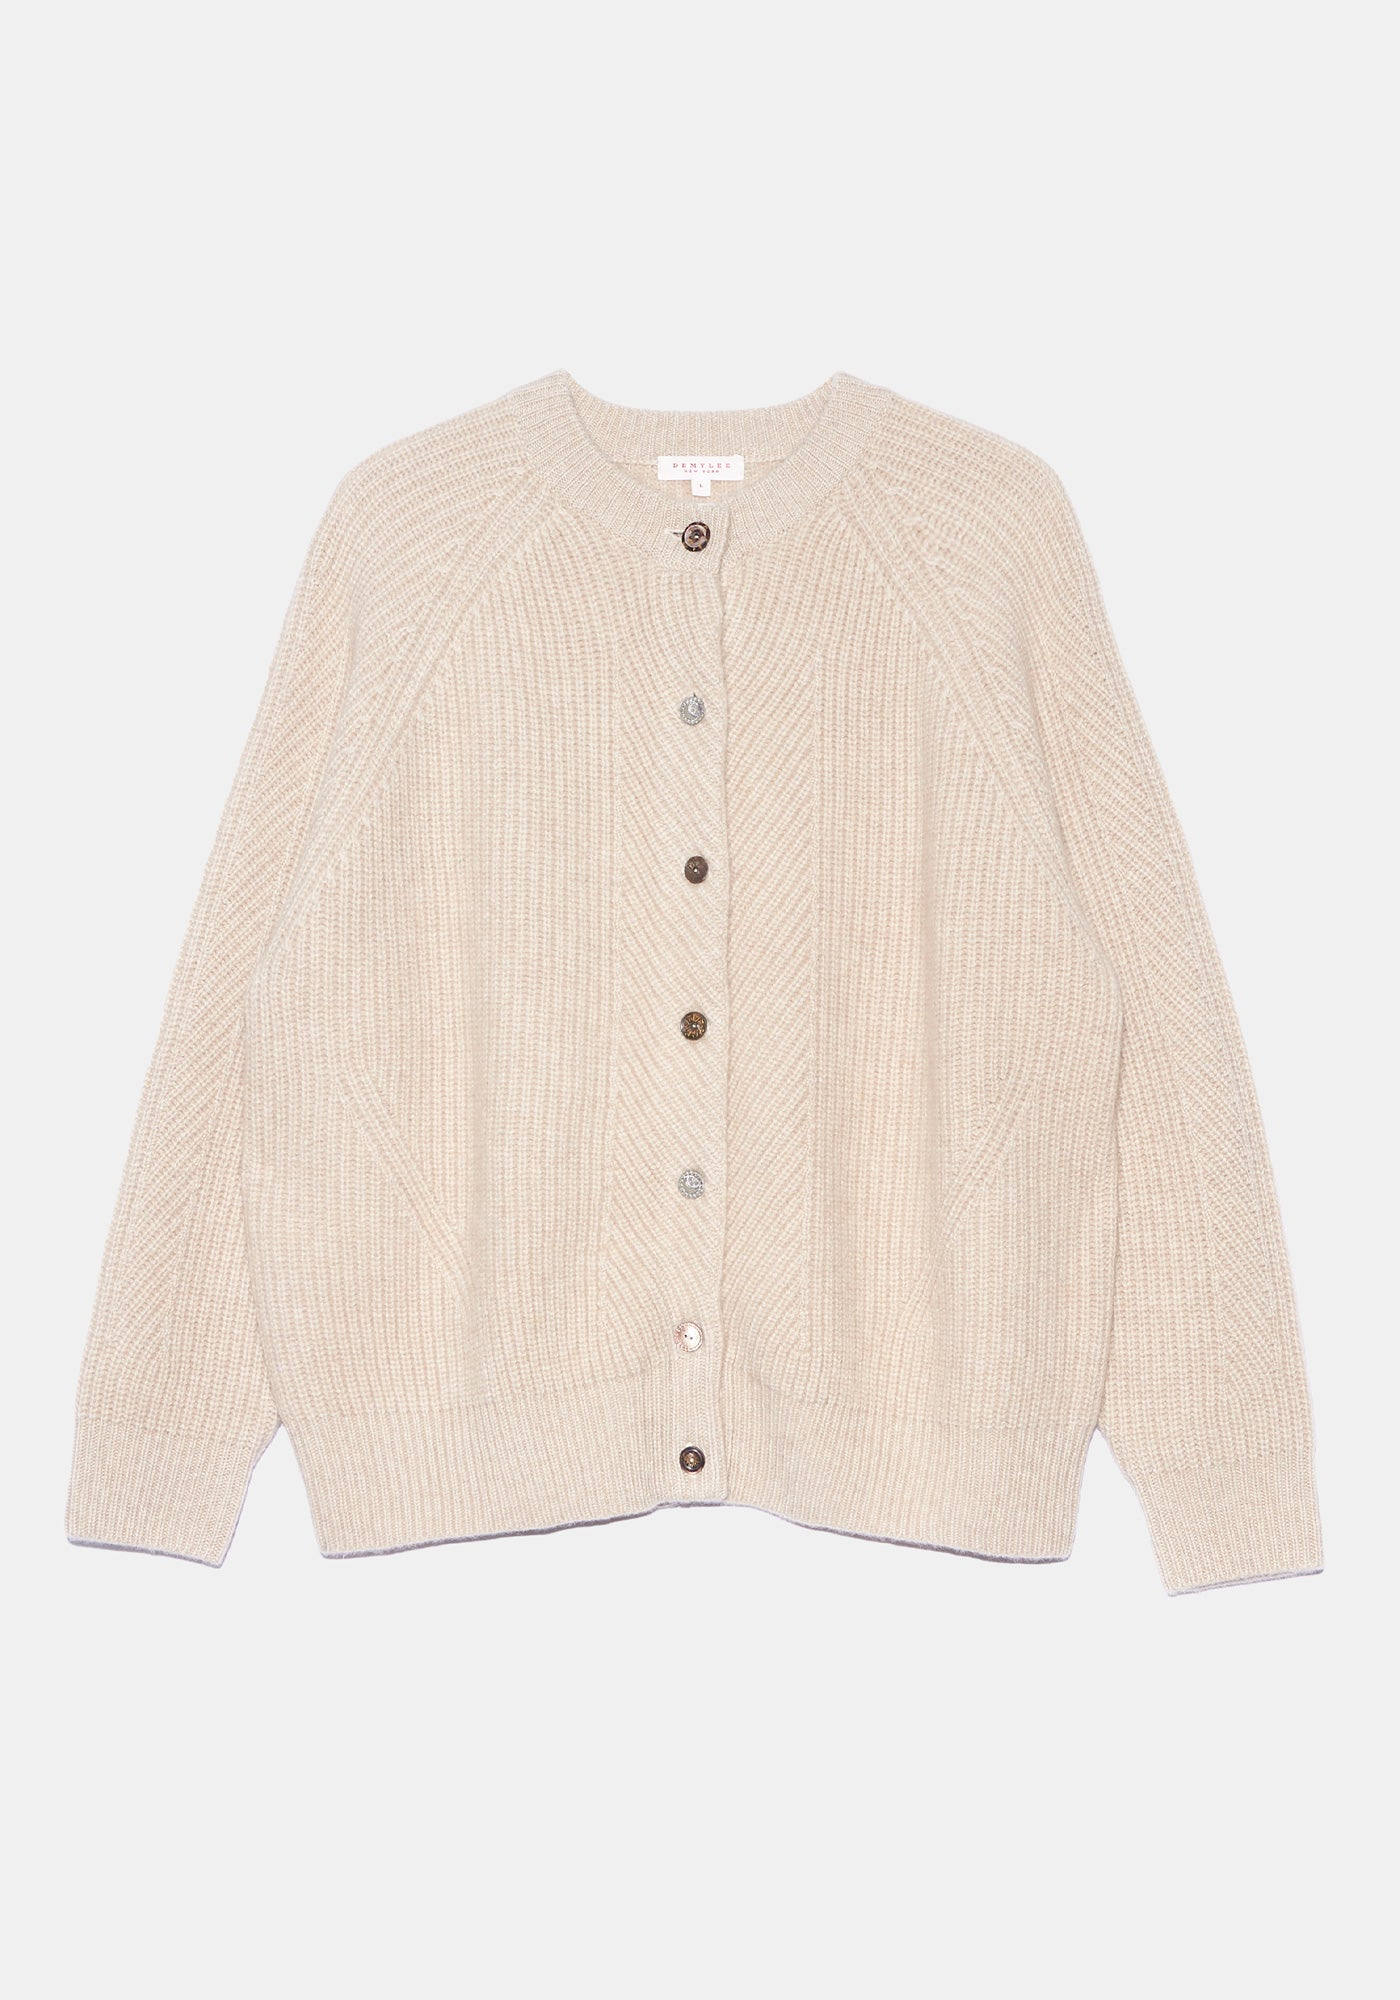 Lt Beige Cashmere Cardigan - L - Shell and Metal Mix